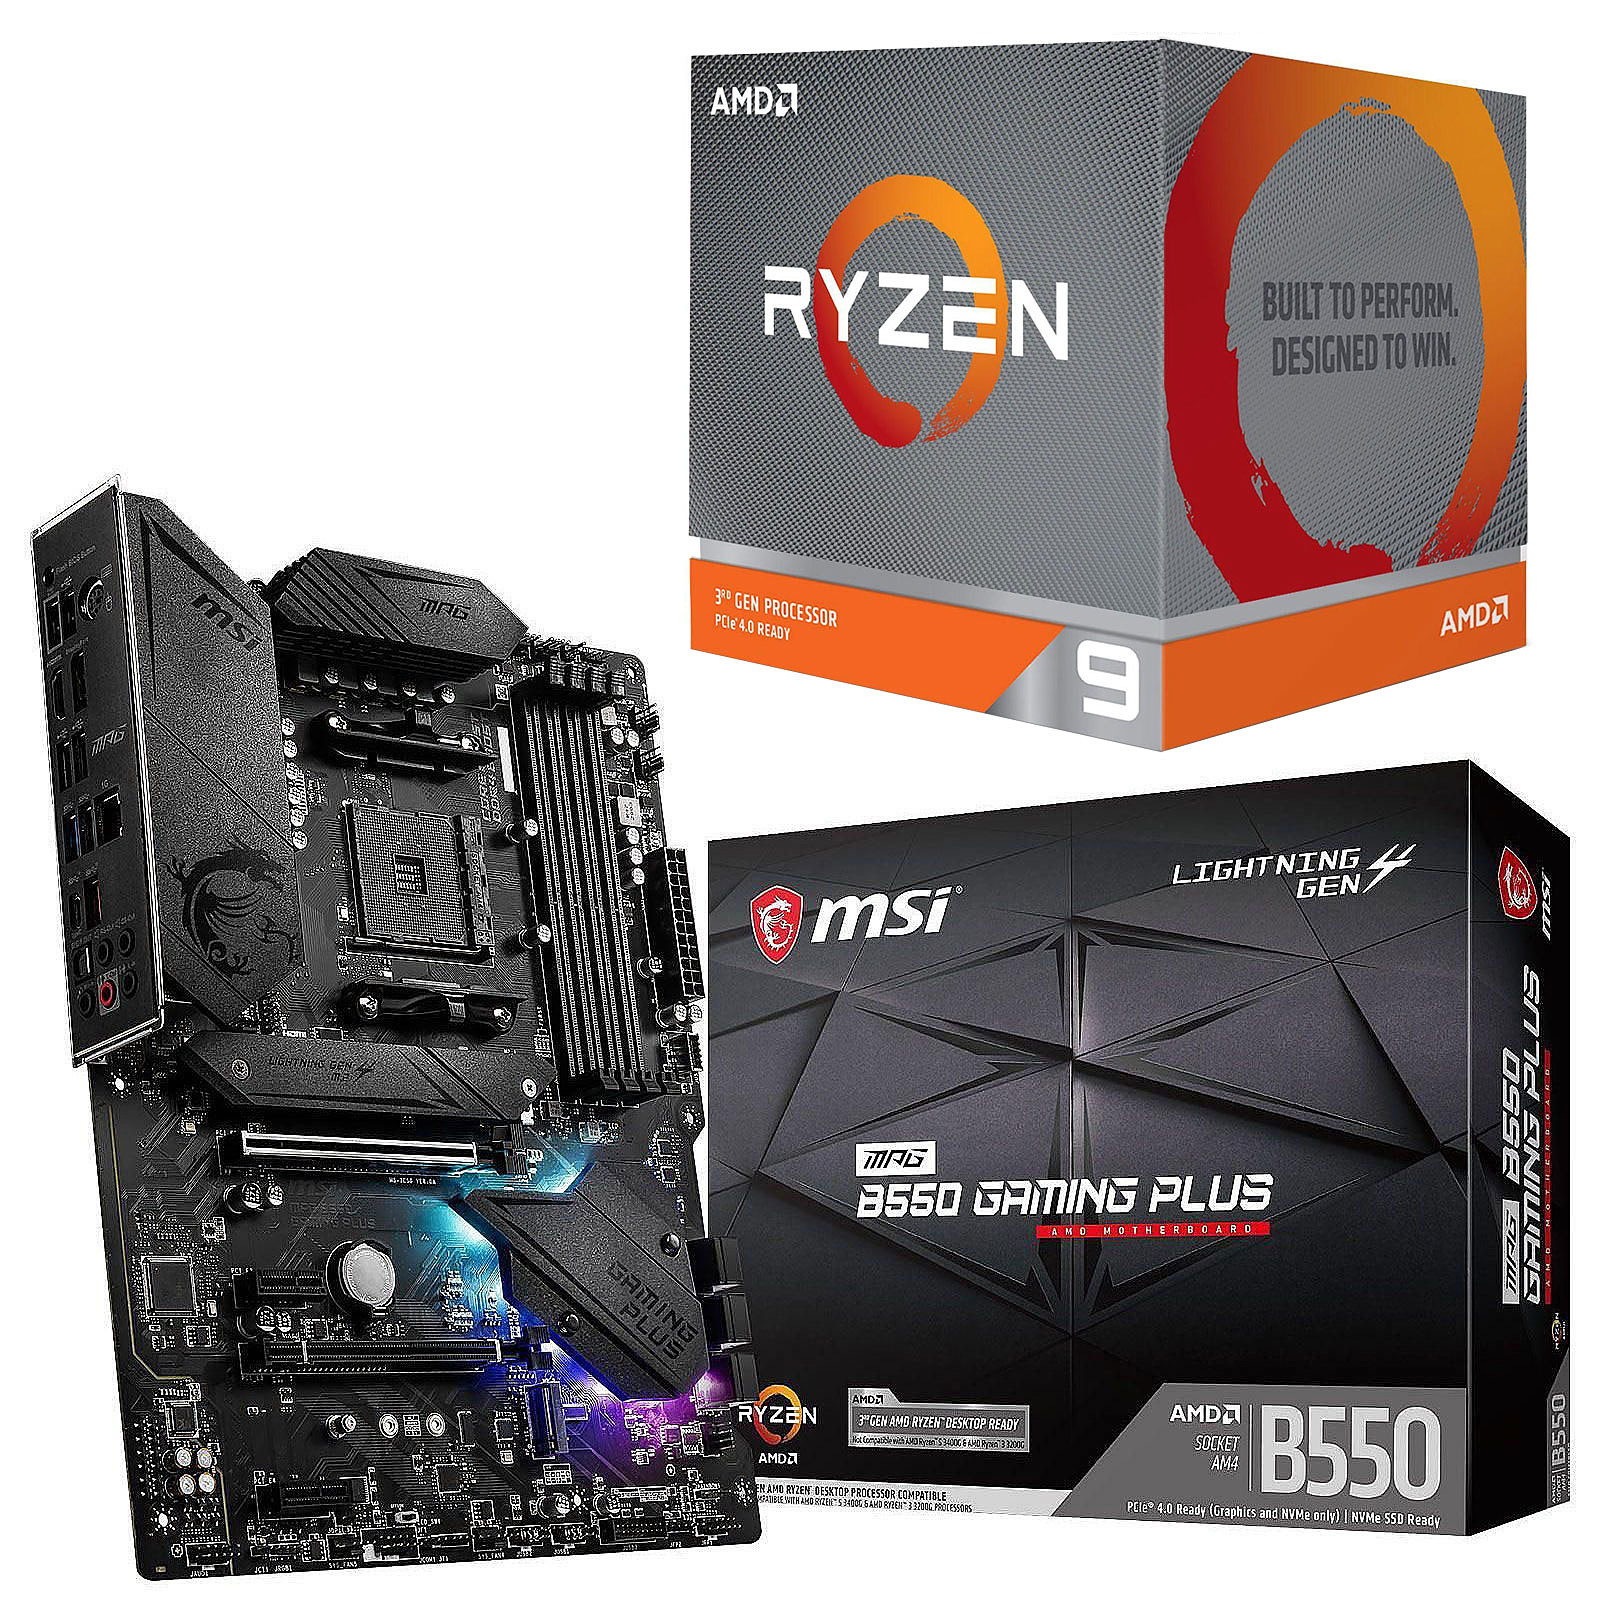 Kit Upgrade PC AMD Ryzen 9 3950X MSI MPG B550 GAMING PLUS